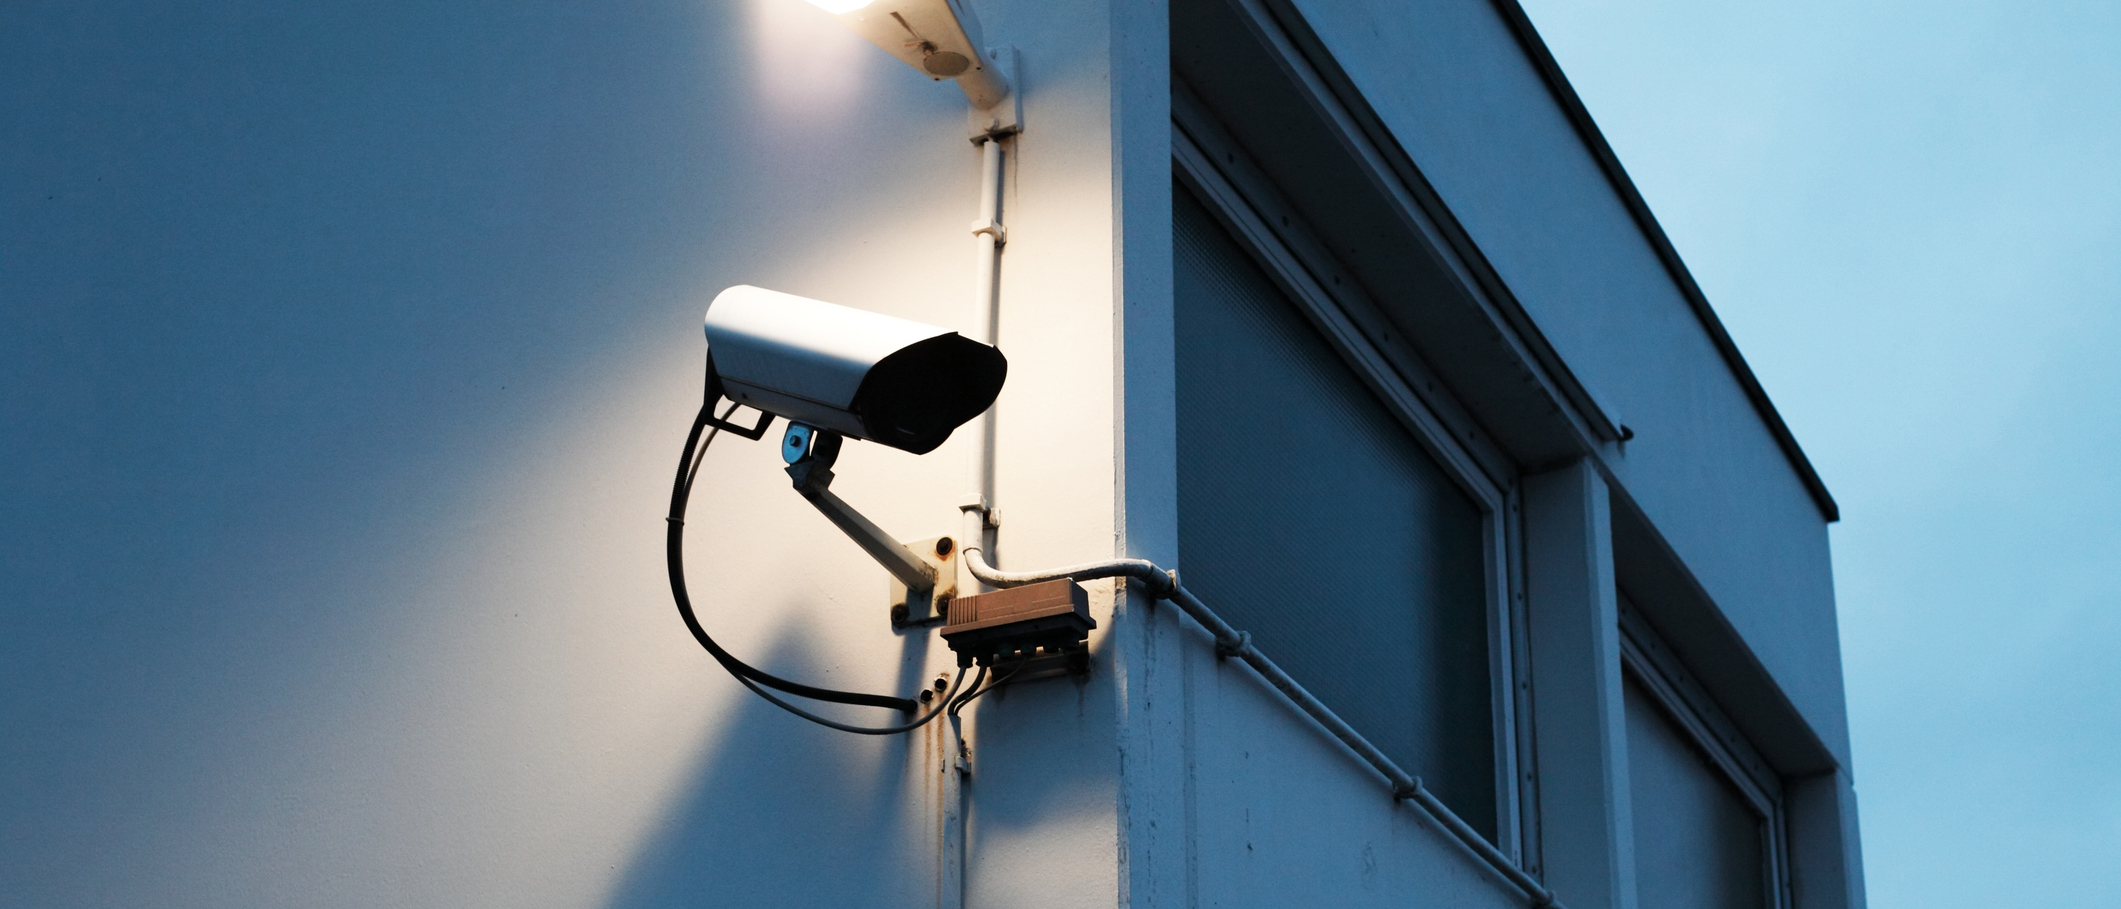 An alarm system with a CCTV surveilling the premises of the building